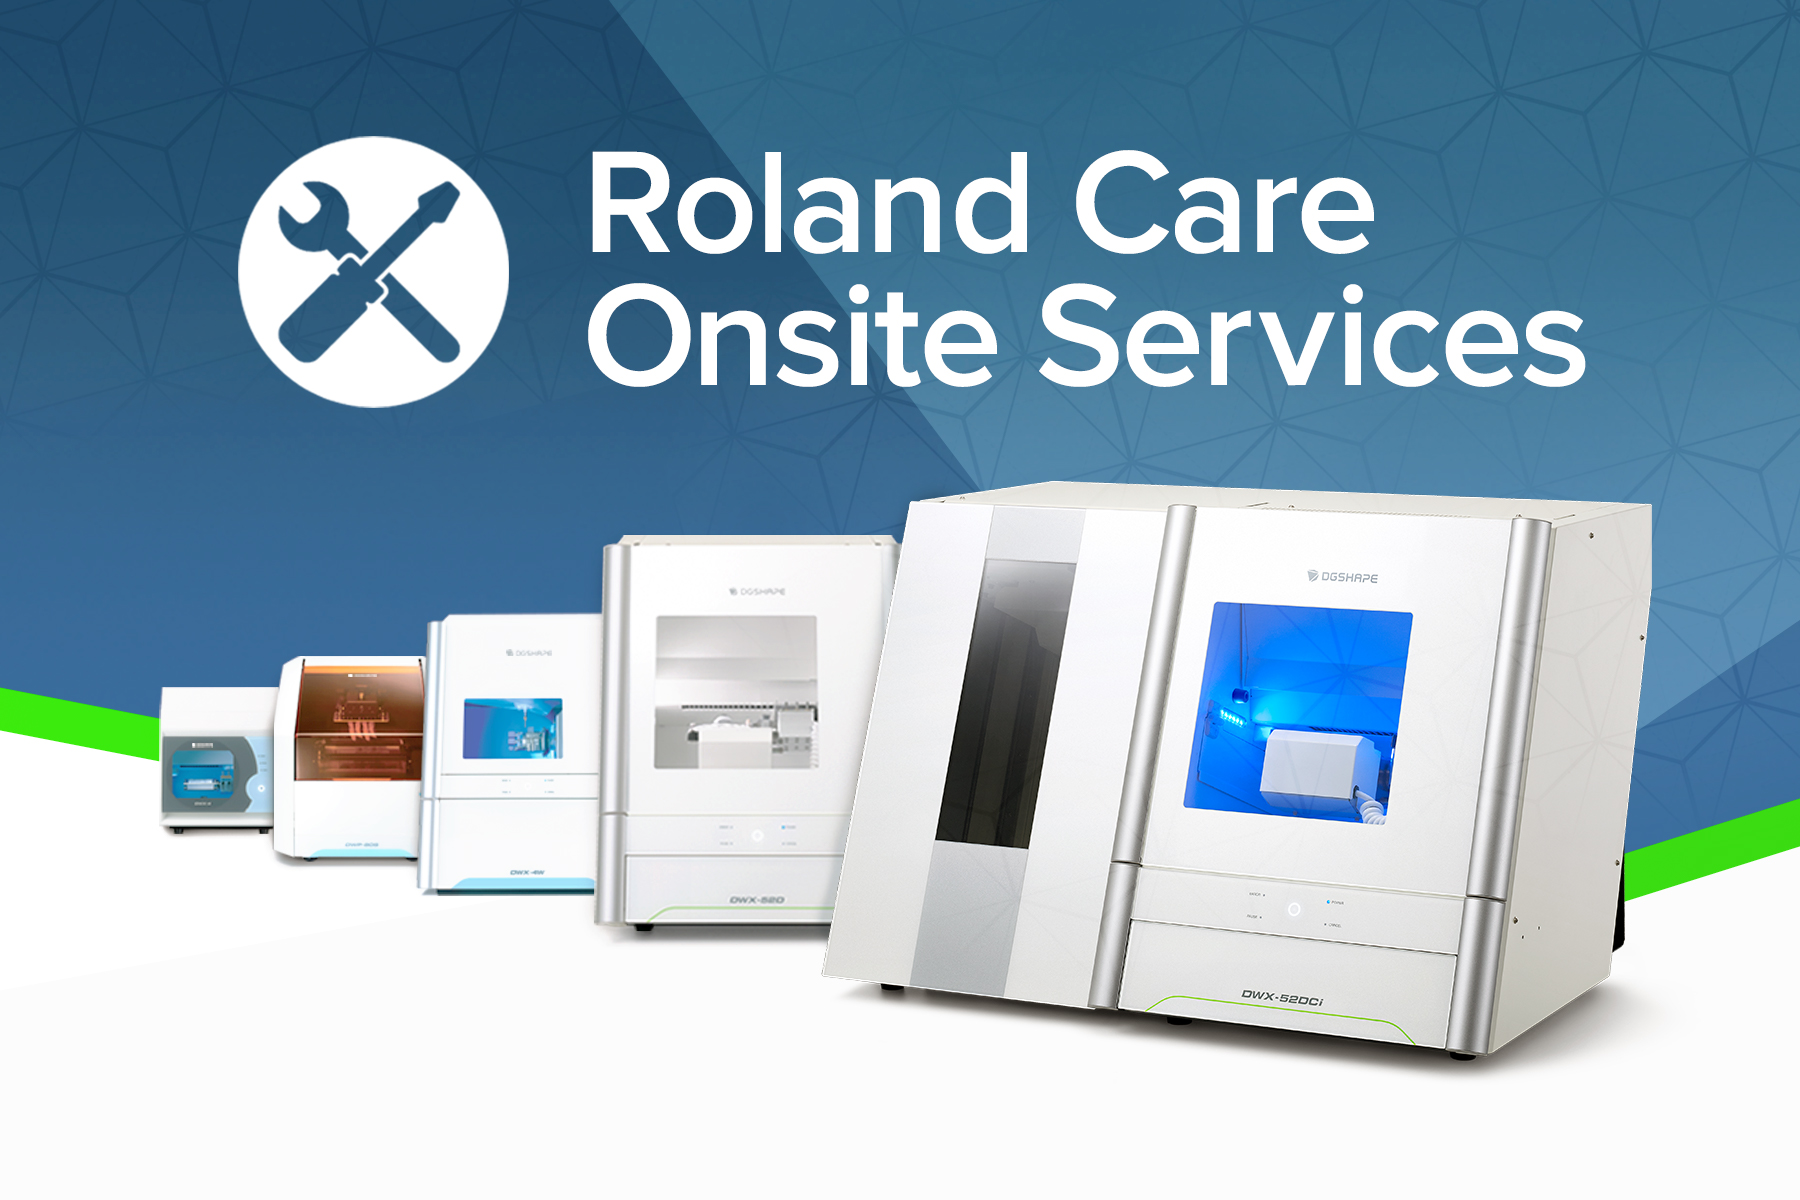 Roland DGA launches Roland Care Onsite Services for owners of Roland dental devices.